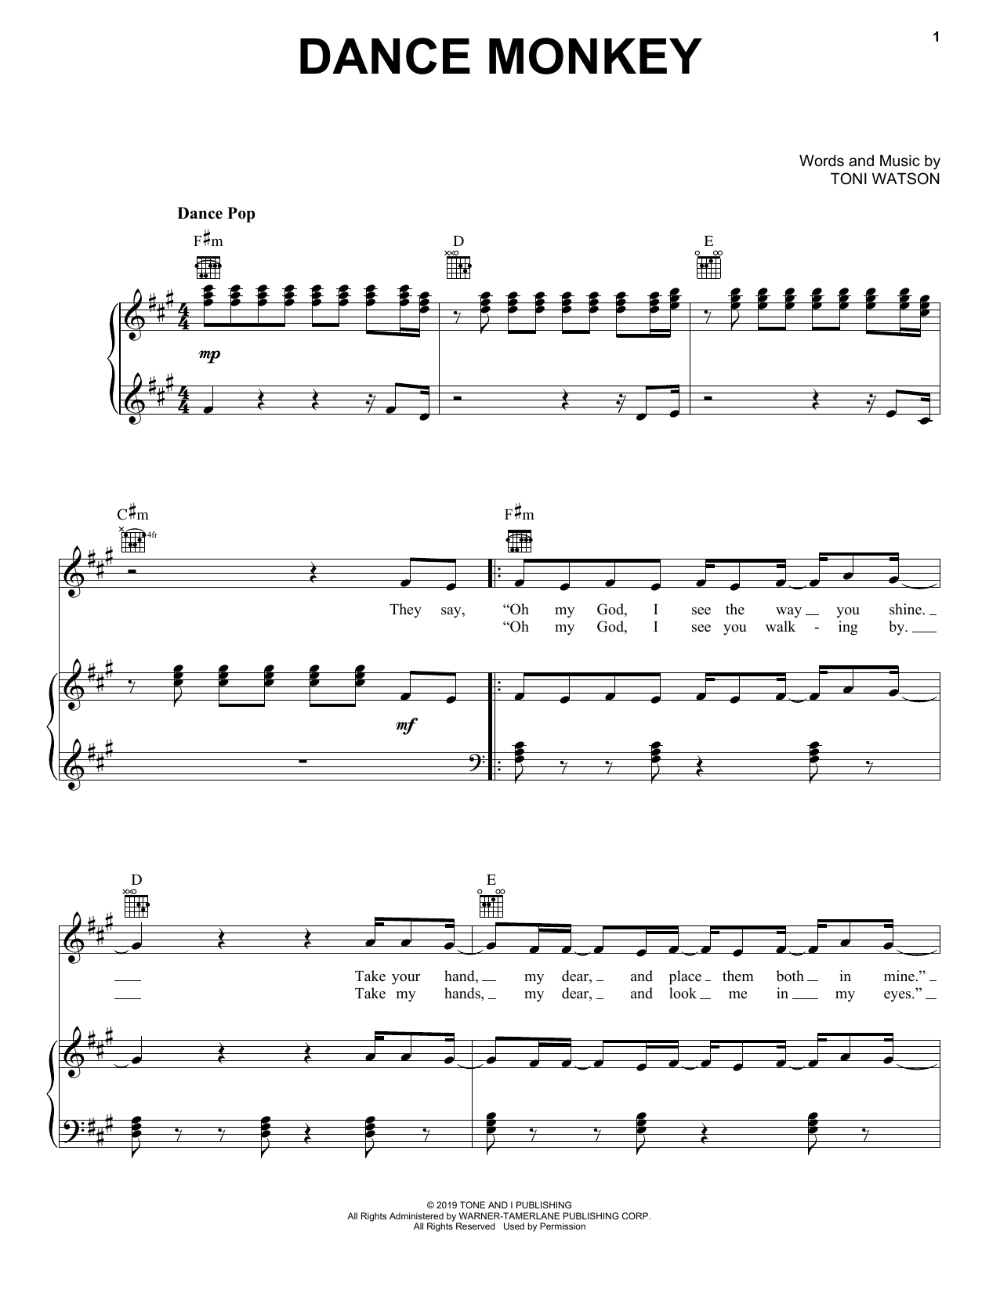 Tones And I Dance Monkey Sheet Music Notes Chords Score Download Printable Pdf Piano Sheet Music Letters Piano Sheet Music Free Sheet Music Notes